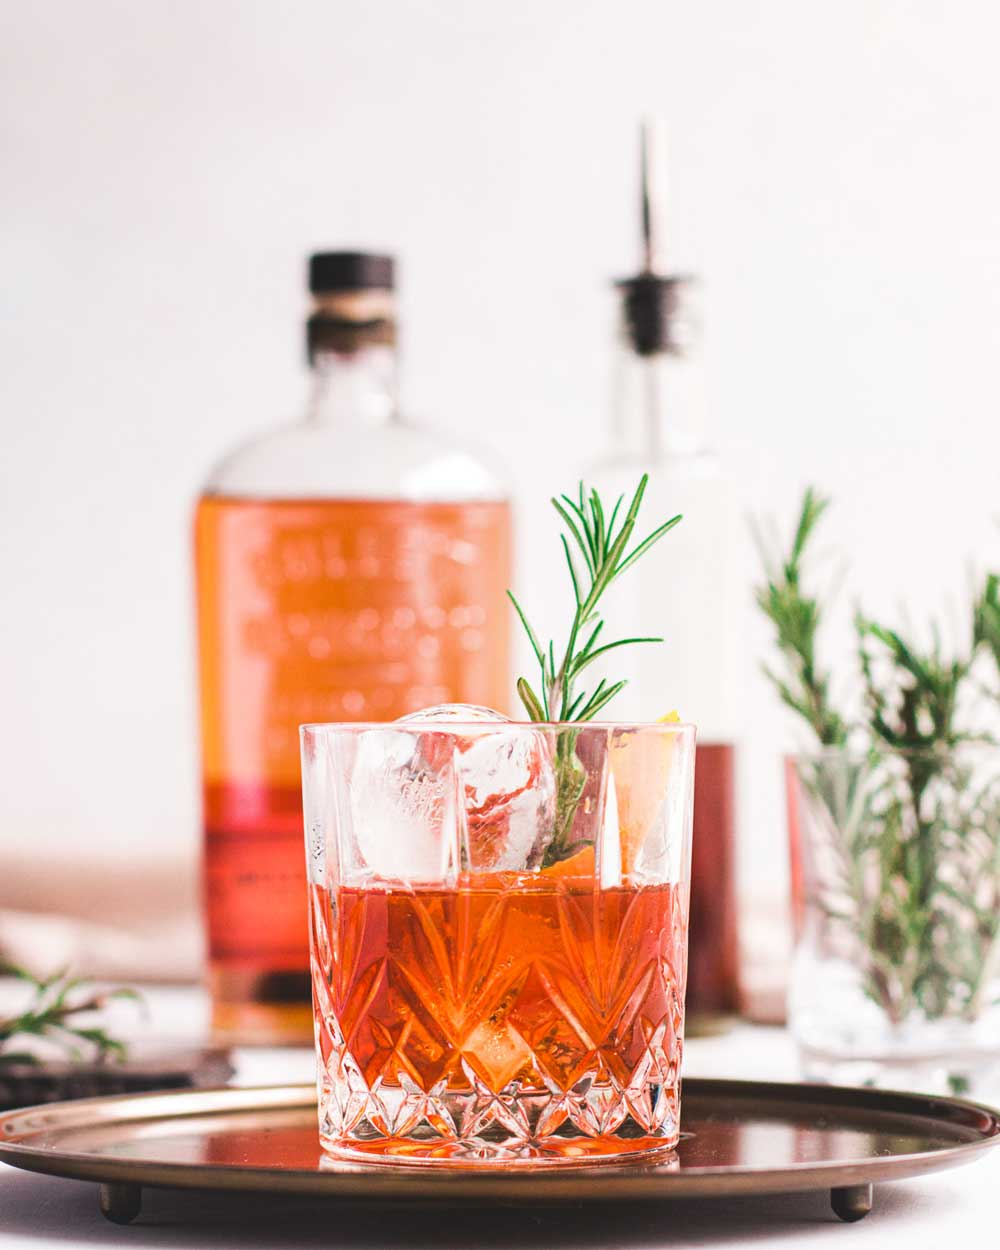 Old Fashioned Cocktail with rosemary garnish